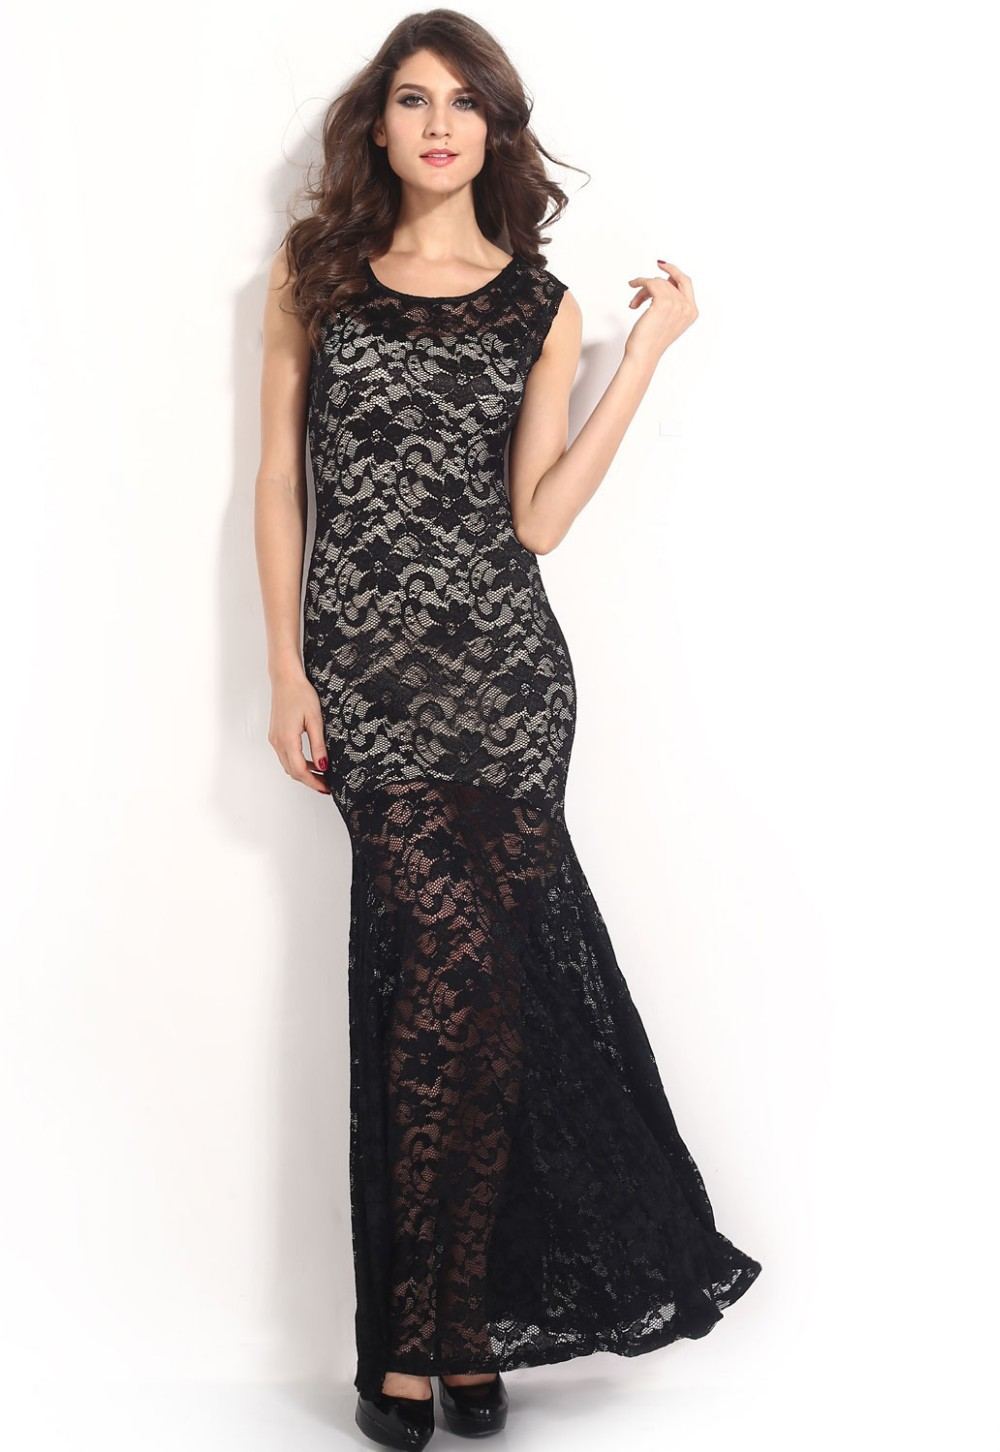 Two-toned-Sexy-Lined-Long-Lace-Evening-Dress-LC6350-15406